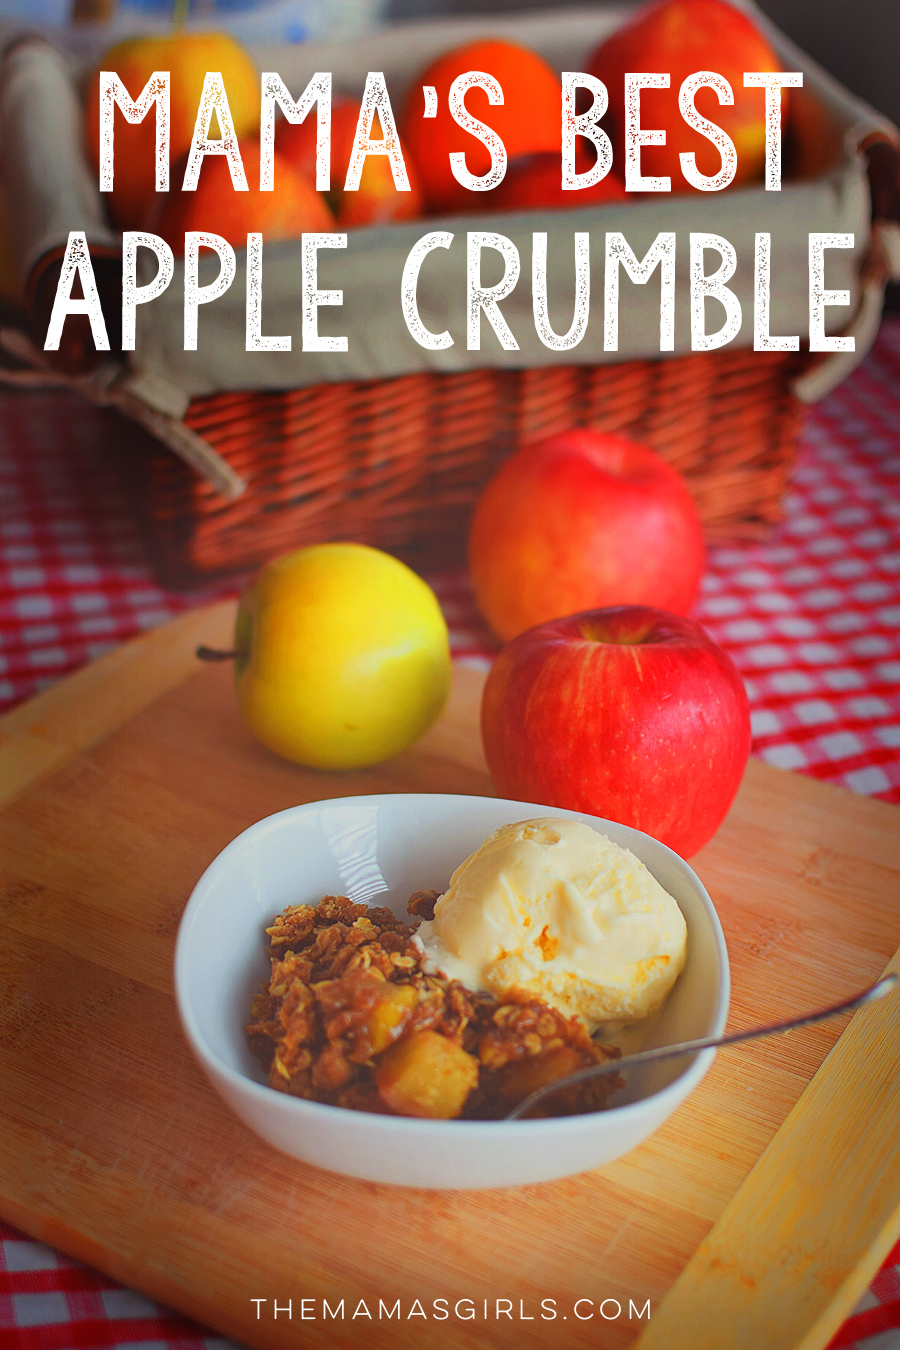 Mama's Best Apple Crumble